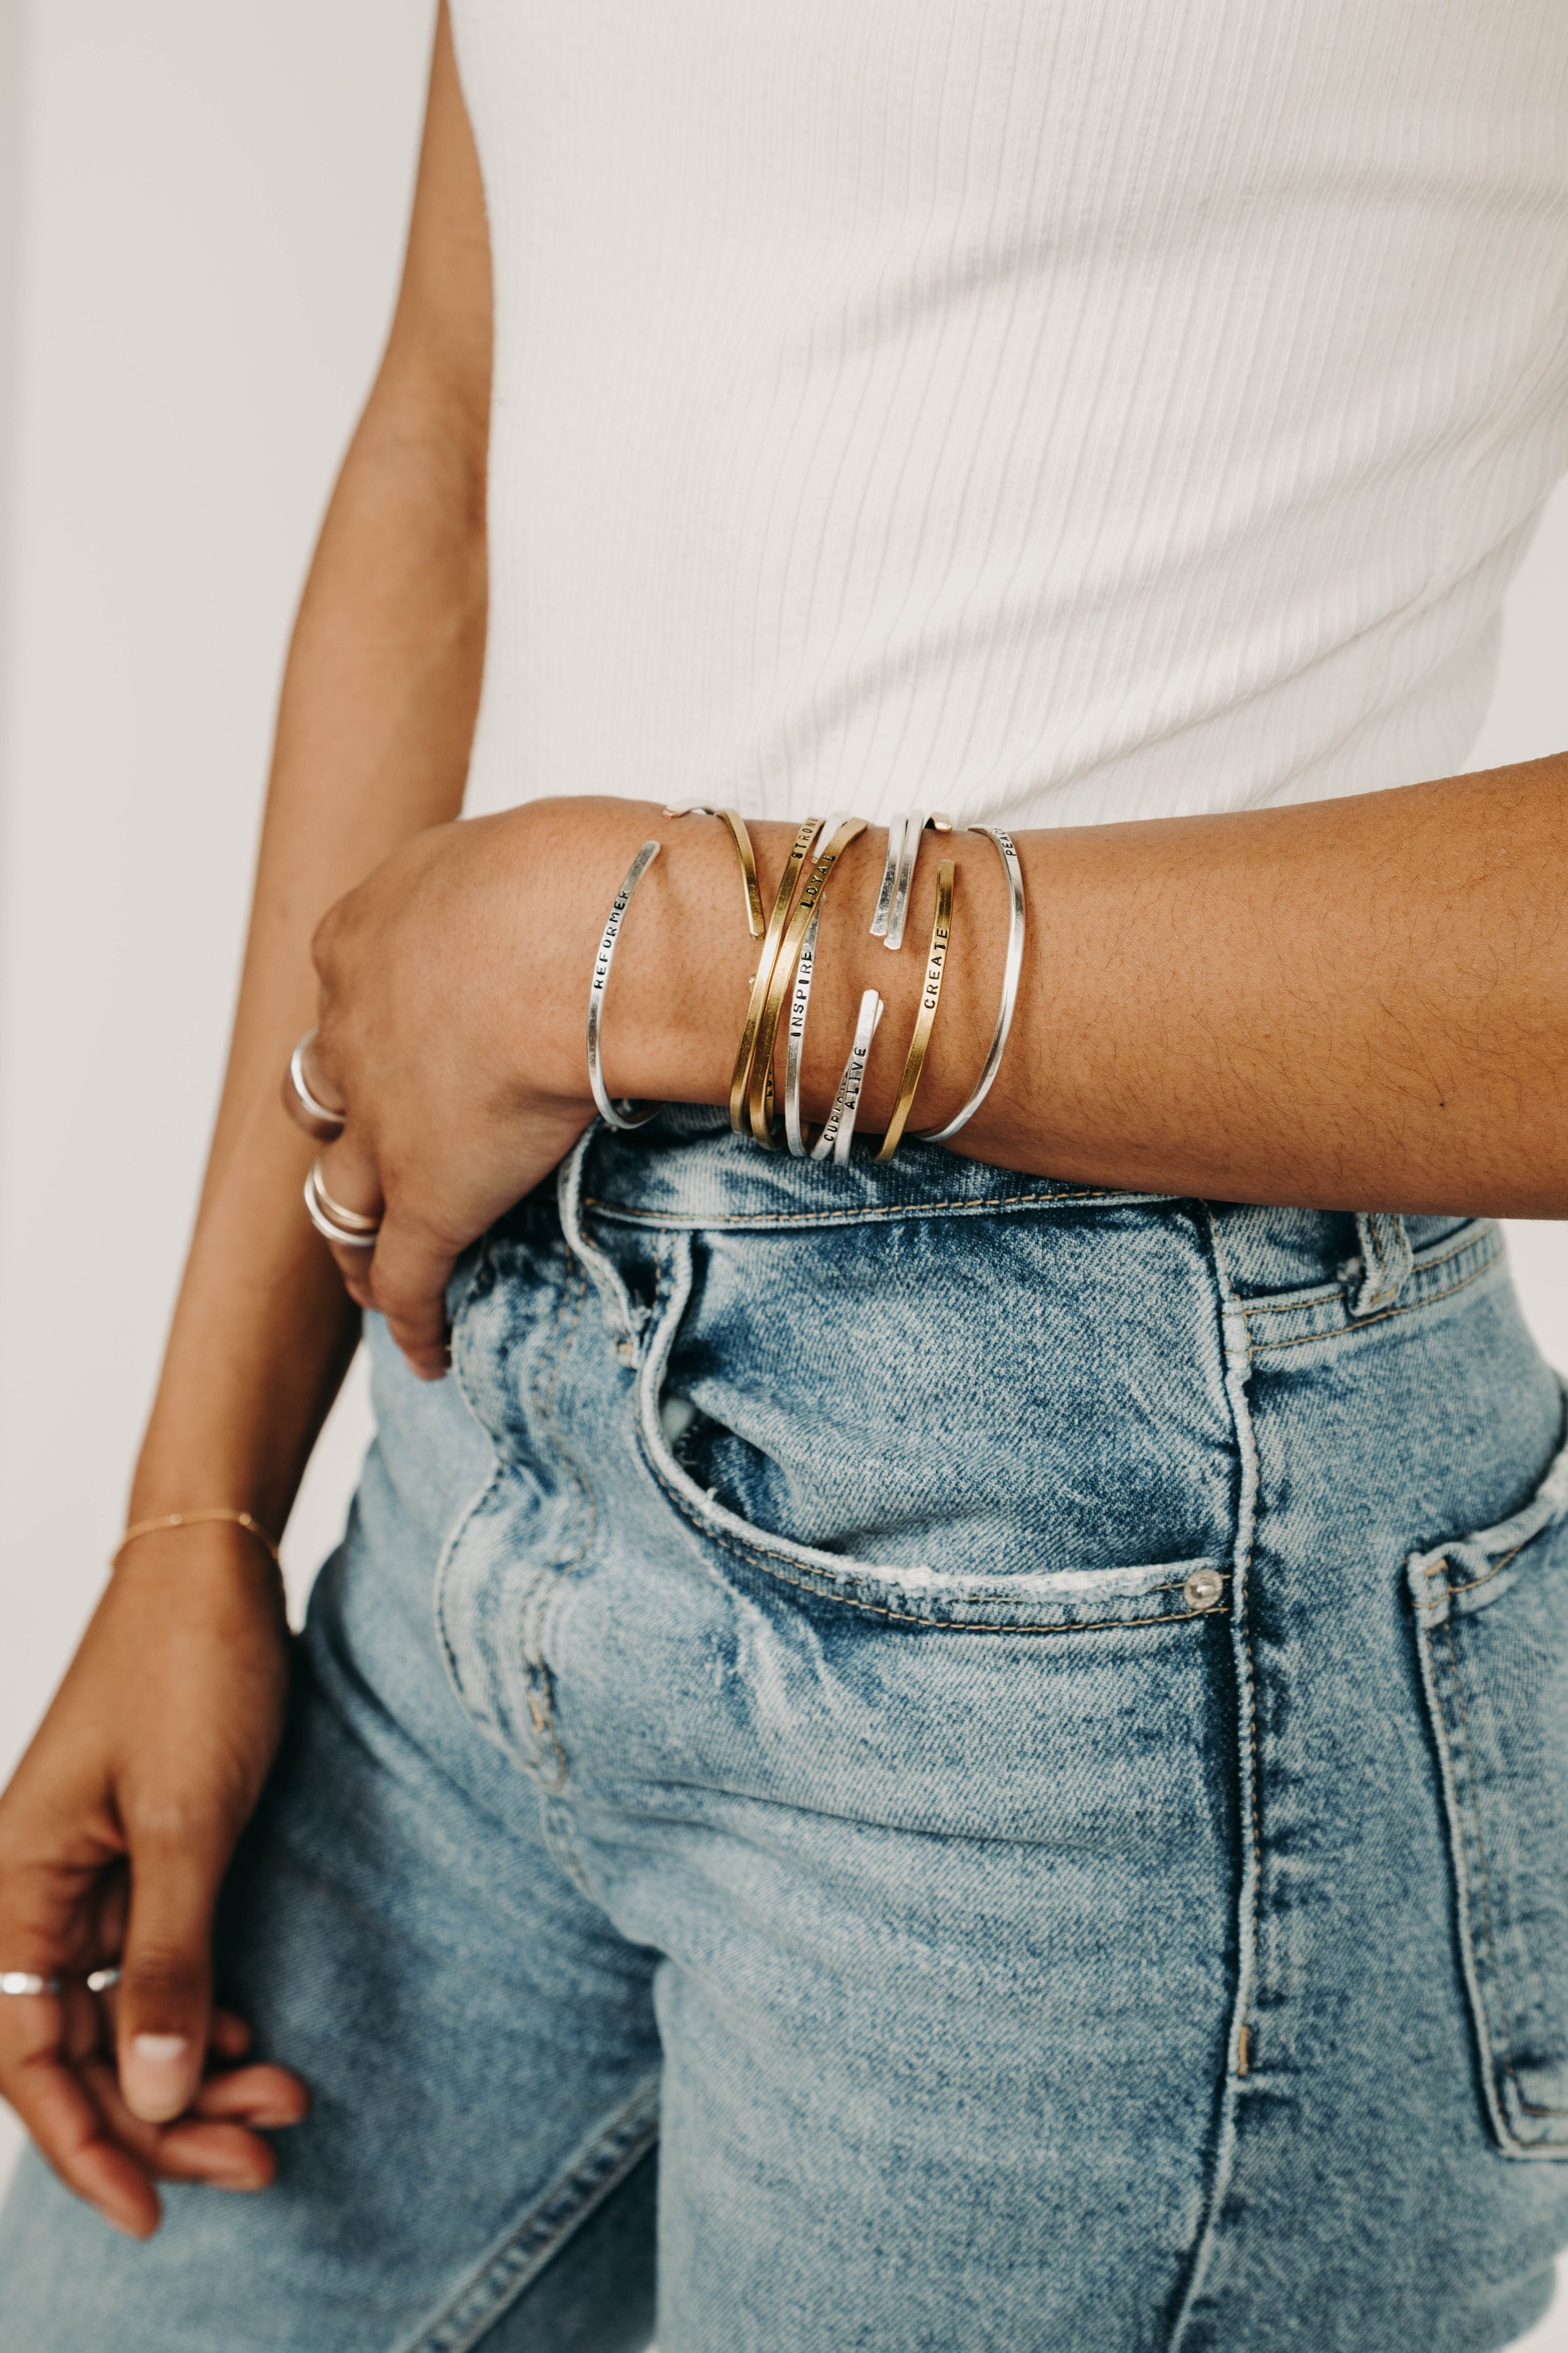 Cuff Collection - The perfect minimalistic and gender-neutral accessory. Our unique metal cuff bracelets can be worn stacked or solo.